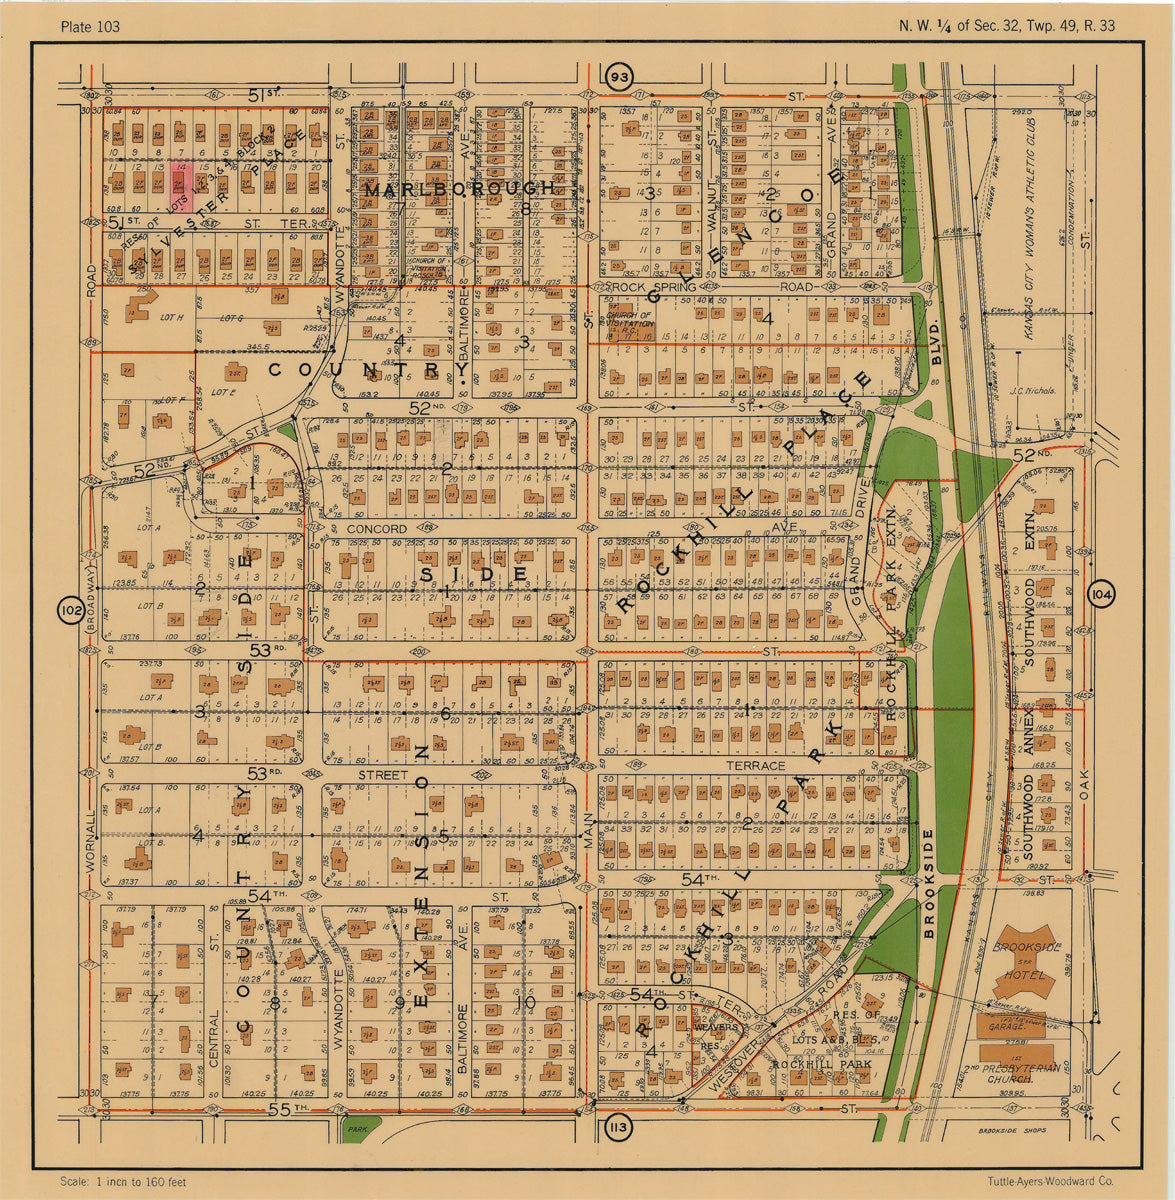 Kansas City 1925 Neighborhood Map - Plate #103 51st-55th Wornall-Oak